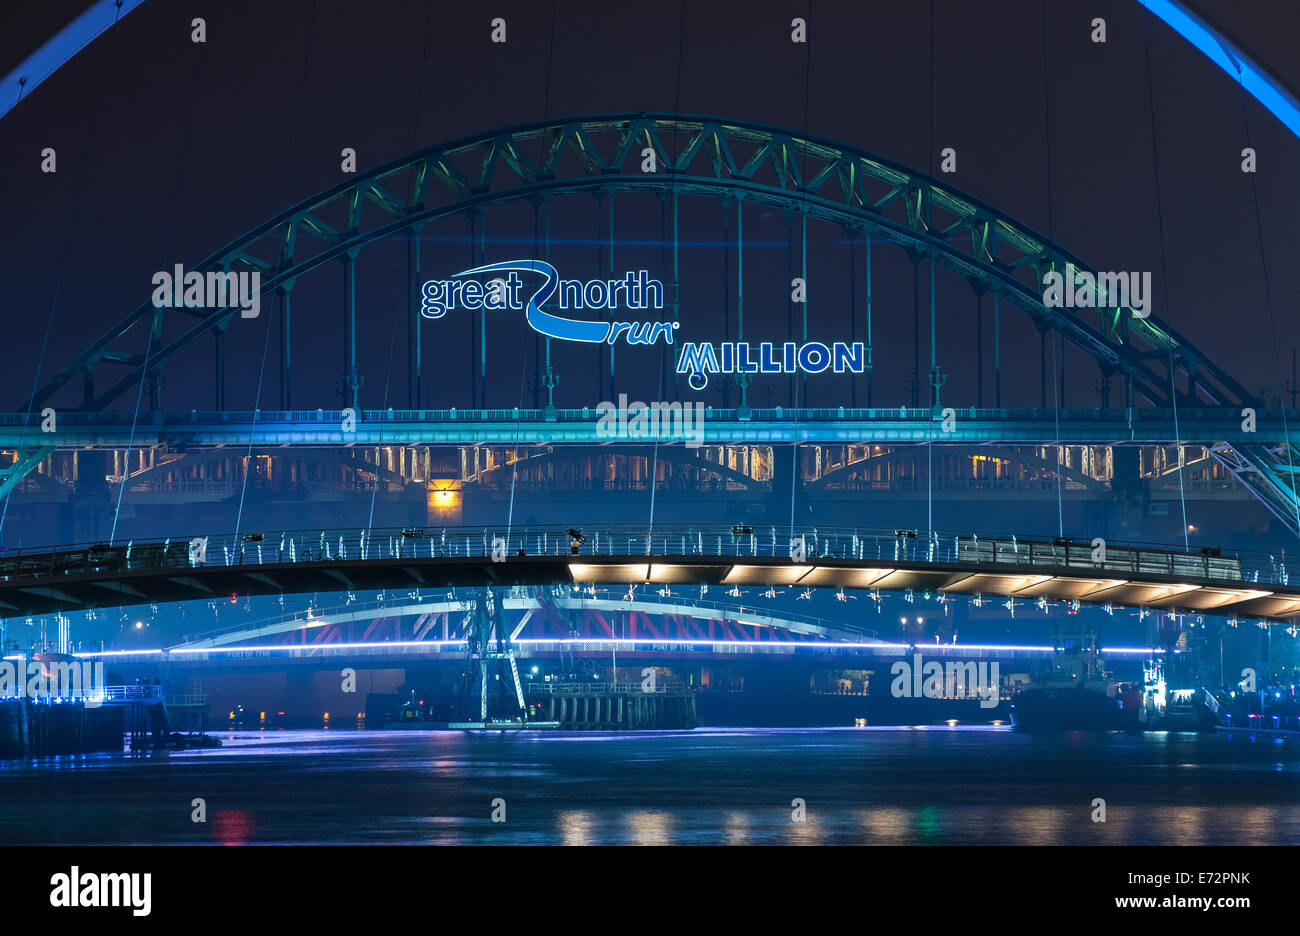 Pictures of event preceding 2014 Great North Run on Tyneside, to celebrate the millionth finisher in the history Stock Photo